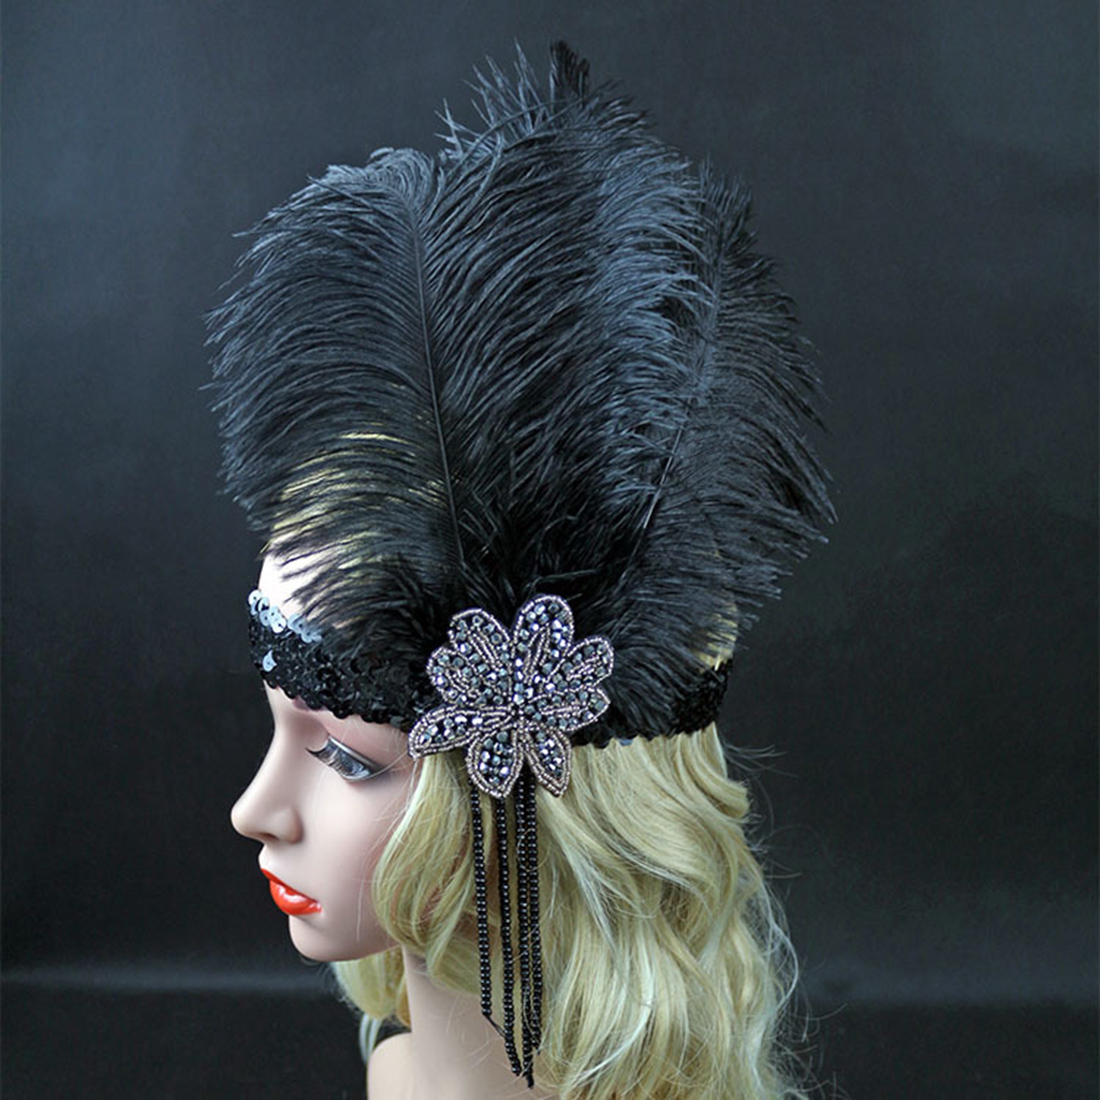 Fashion Black Rhinestone Beaded Sequin Hair band 1920s Vintage Gatsby Party Headpiece Women Flapper Feather Headband